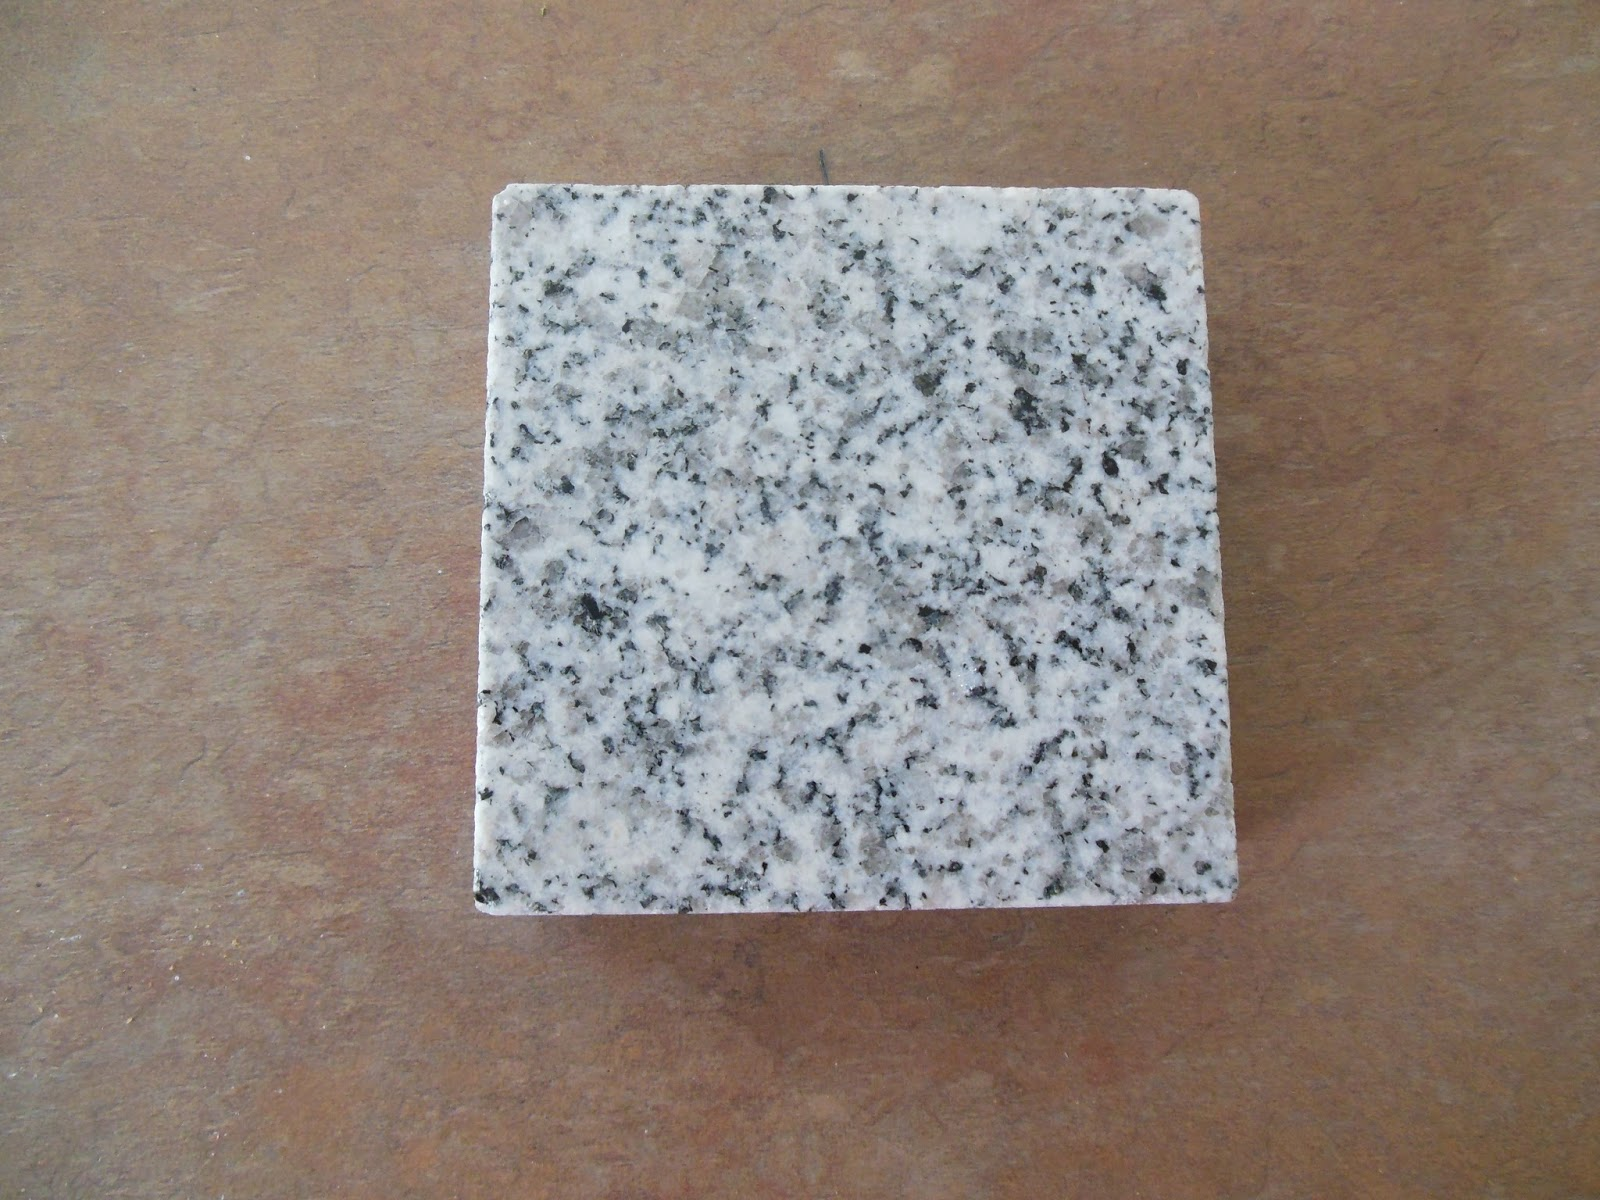 about countertop ideas designing countertops remodel sheets depot for aetherair interior co depict with home laminate pretty marvellous asli